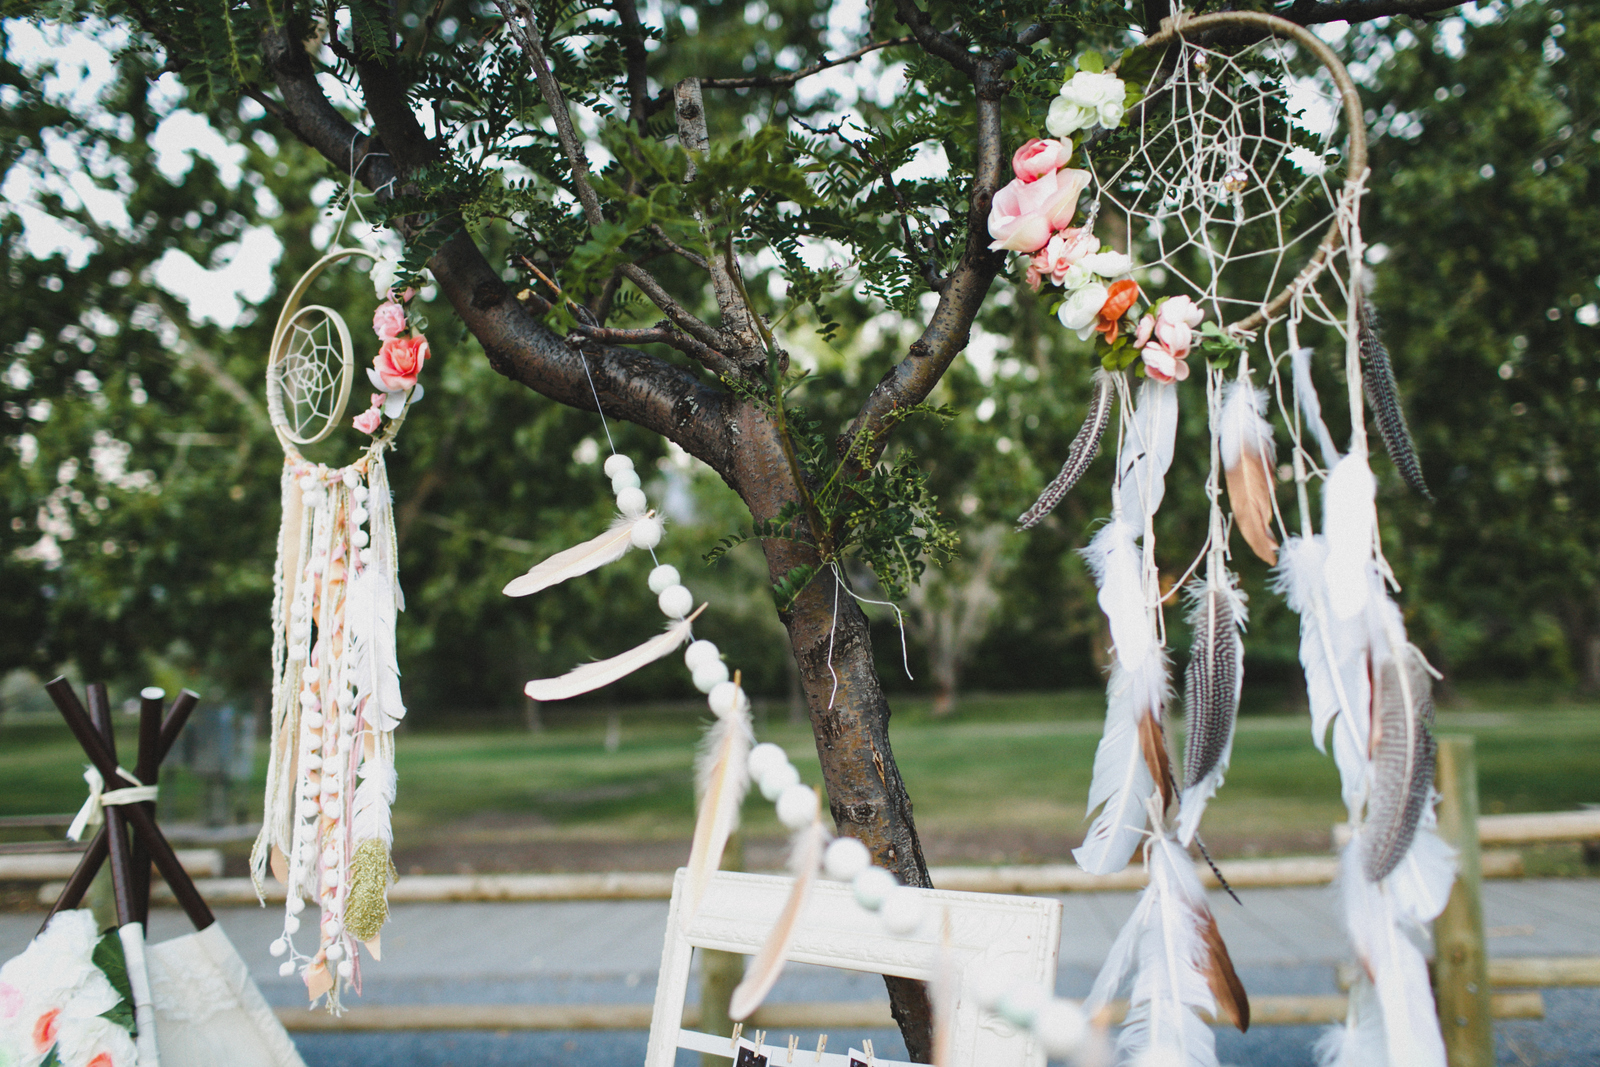 Boho birthday party dreamcatchers - Photo by Summer Nicole Photo